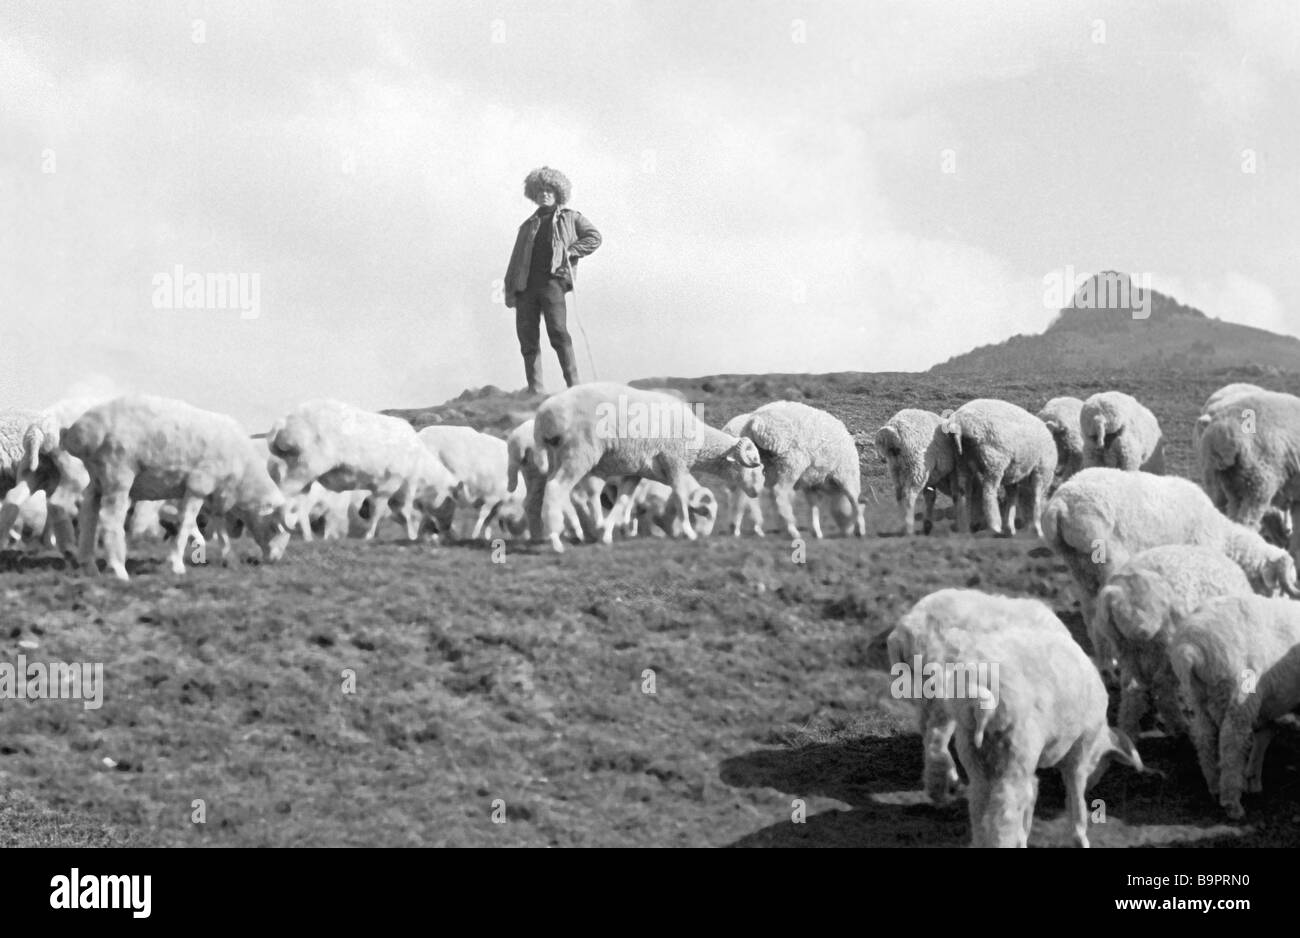 A Shepherd With Flock Of Sheep On Mountain Pasture